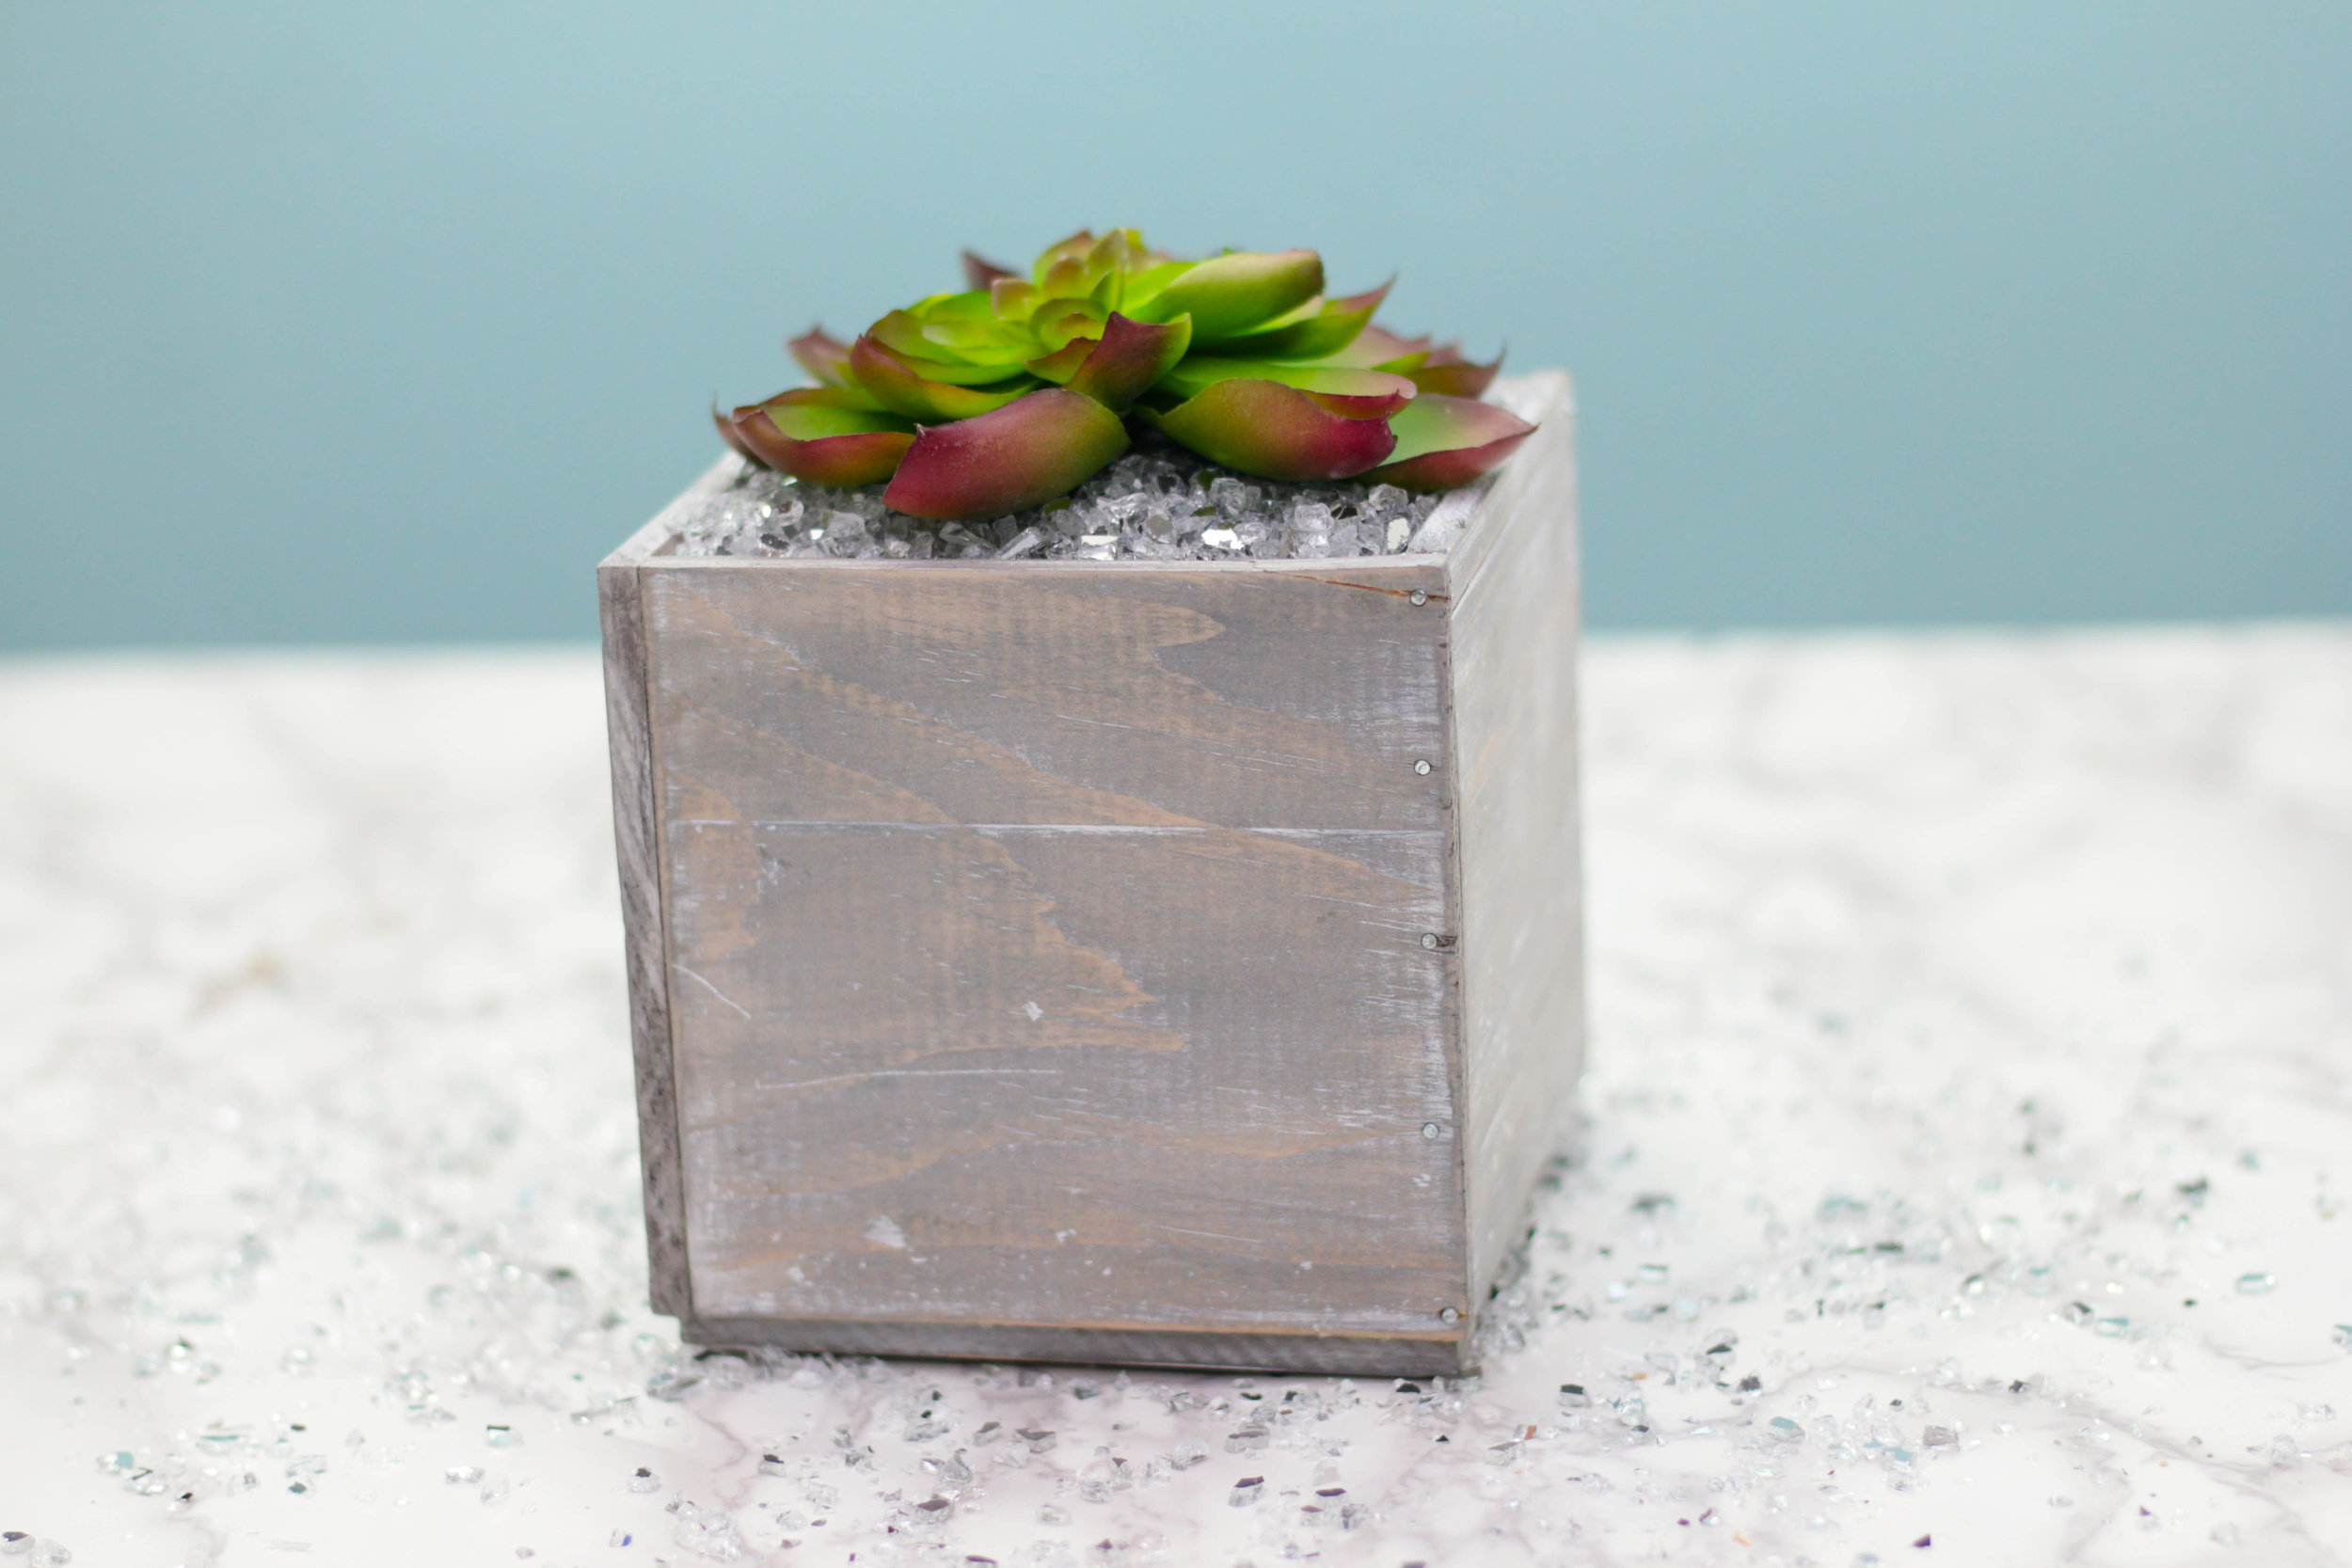 DIY Planter Ideas | Distressed Planter Box (COMING SOON)